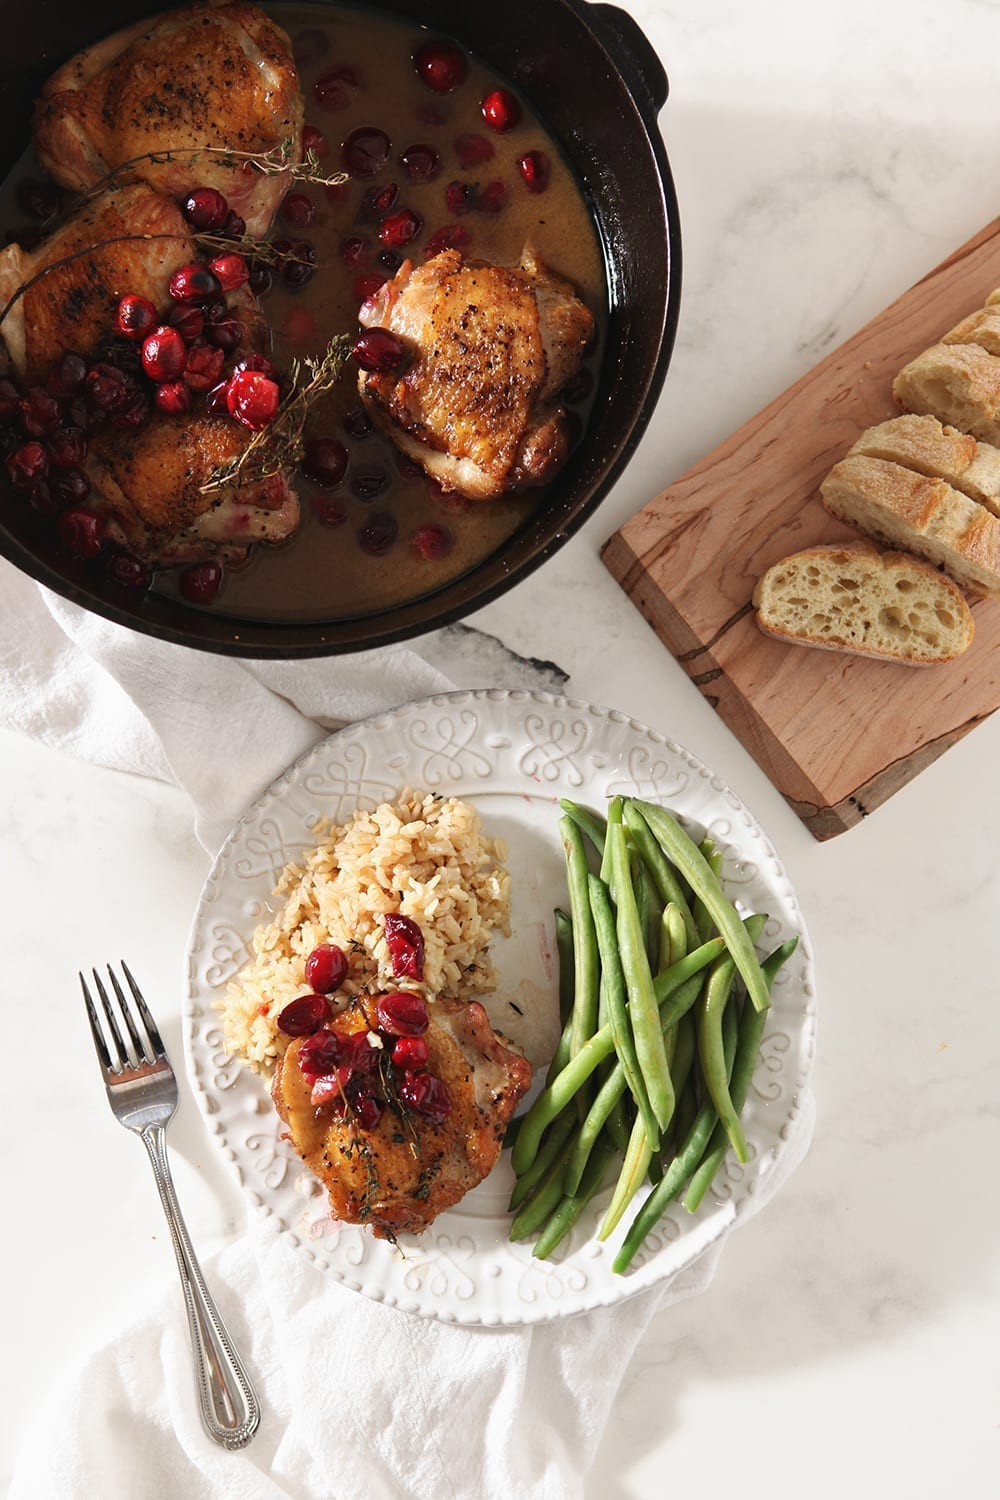 Overhead image of a cranberry chicken thigh on a plate, with rice and steamed green beans